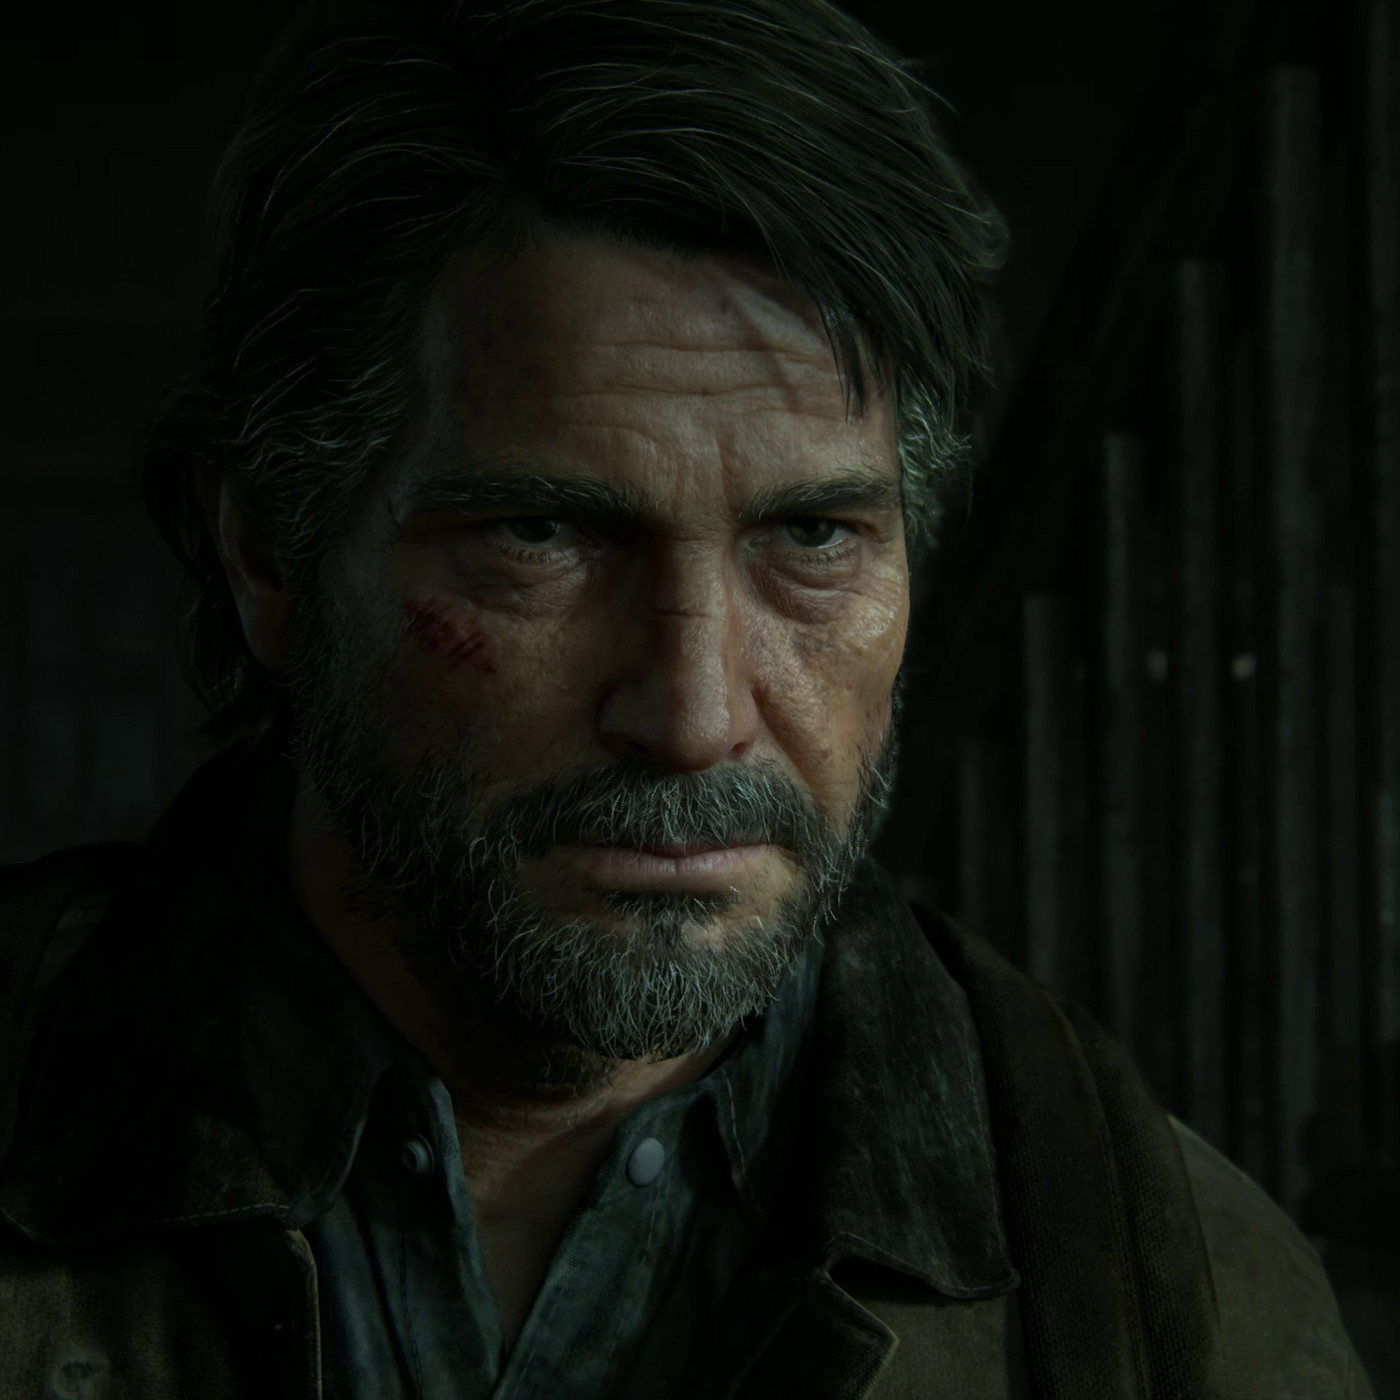 The Last of Us Part 2 release date set for February 2020